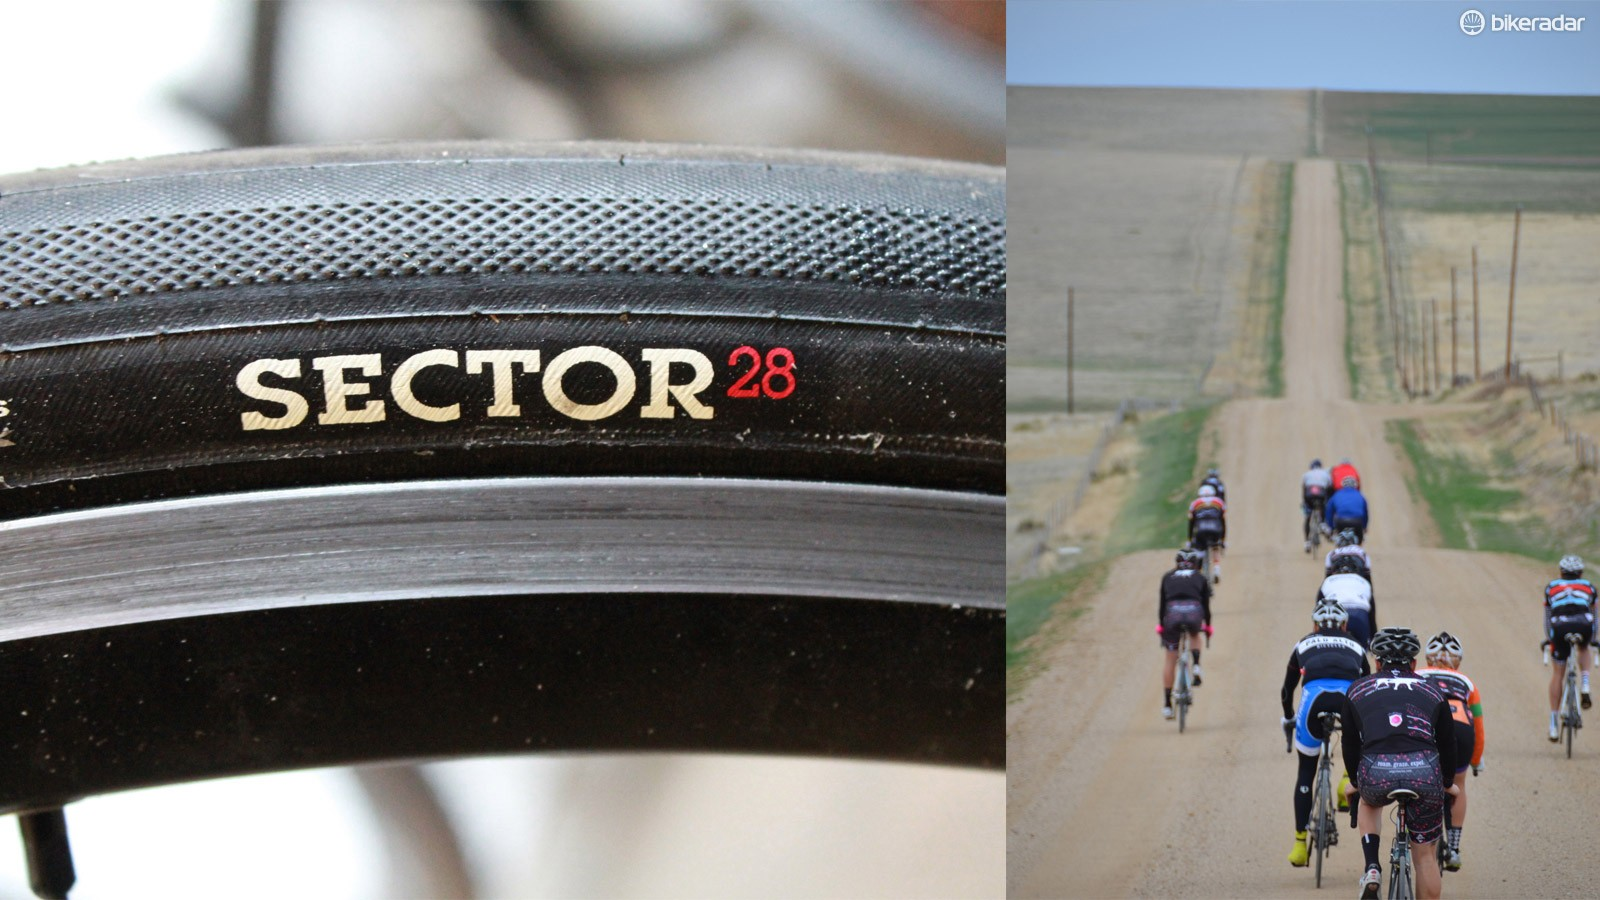 If you like road rides like these, then you'll almost certainly like the Sector 28s